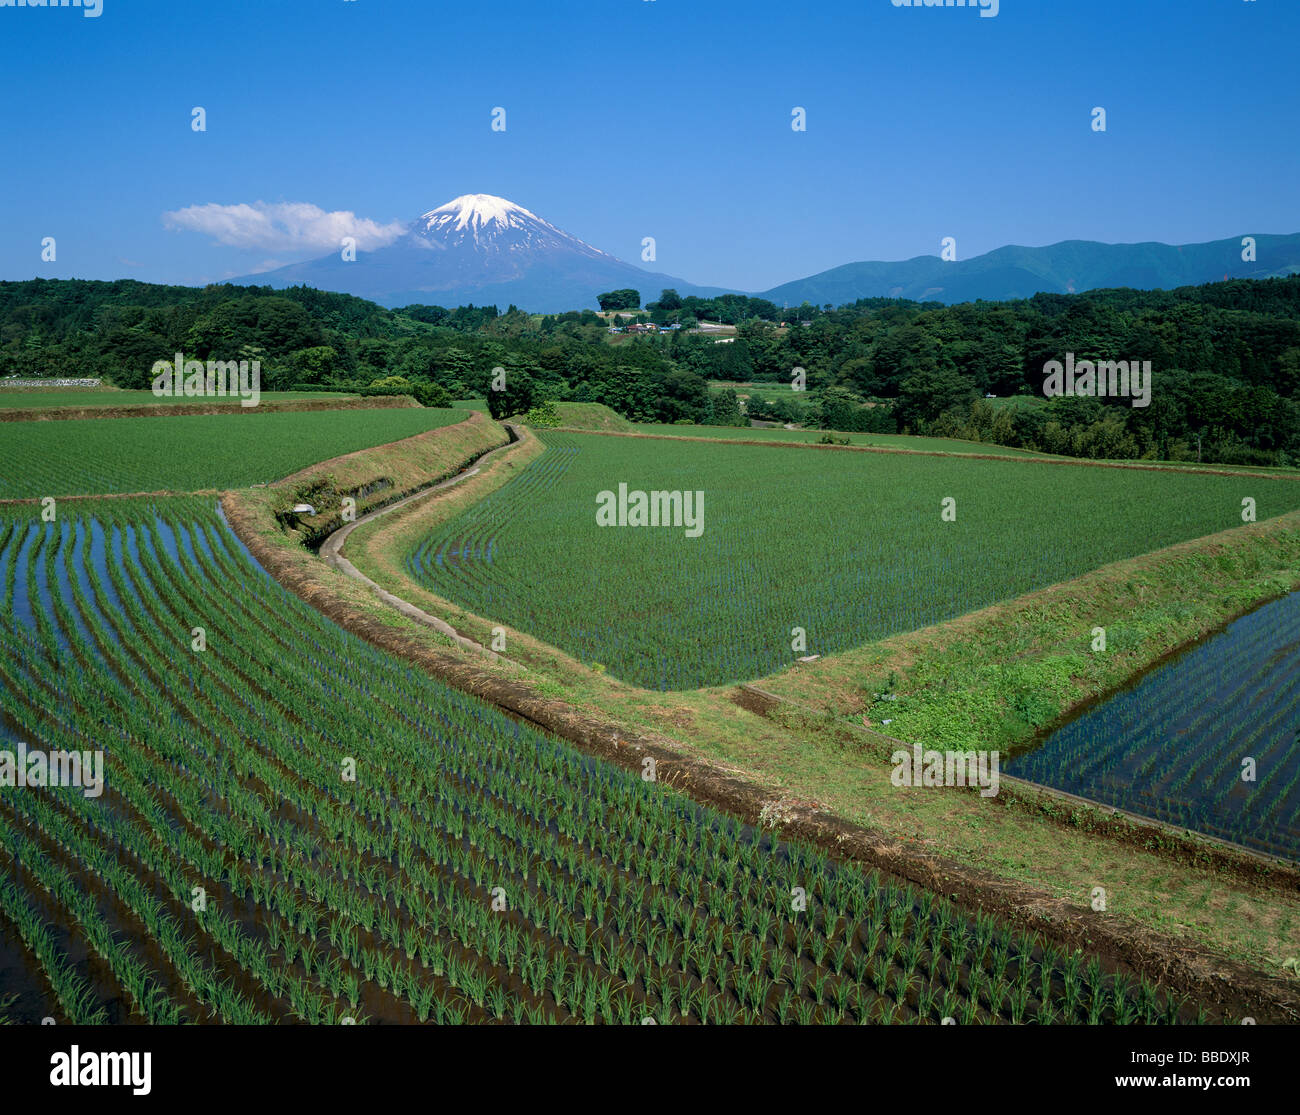 Mt.Fuji And Rice Field - Stock Image